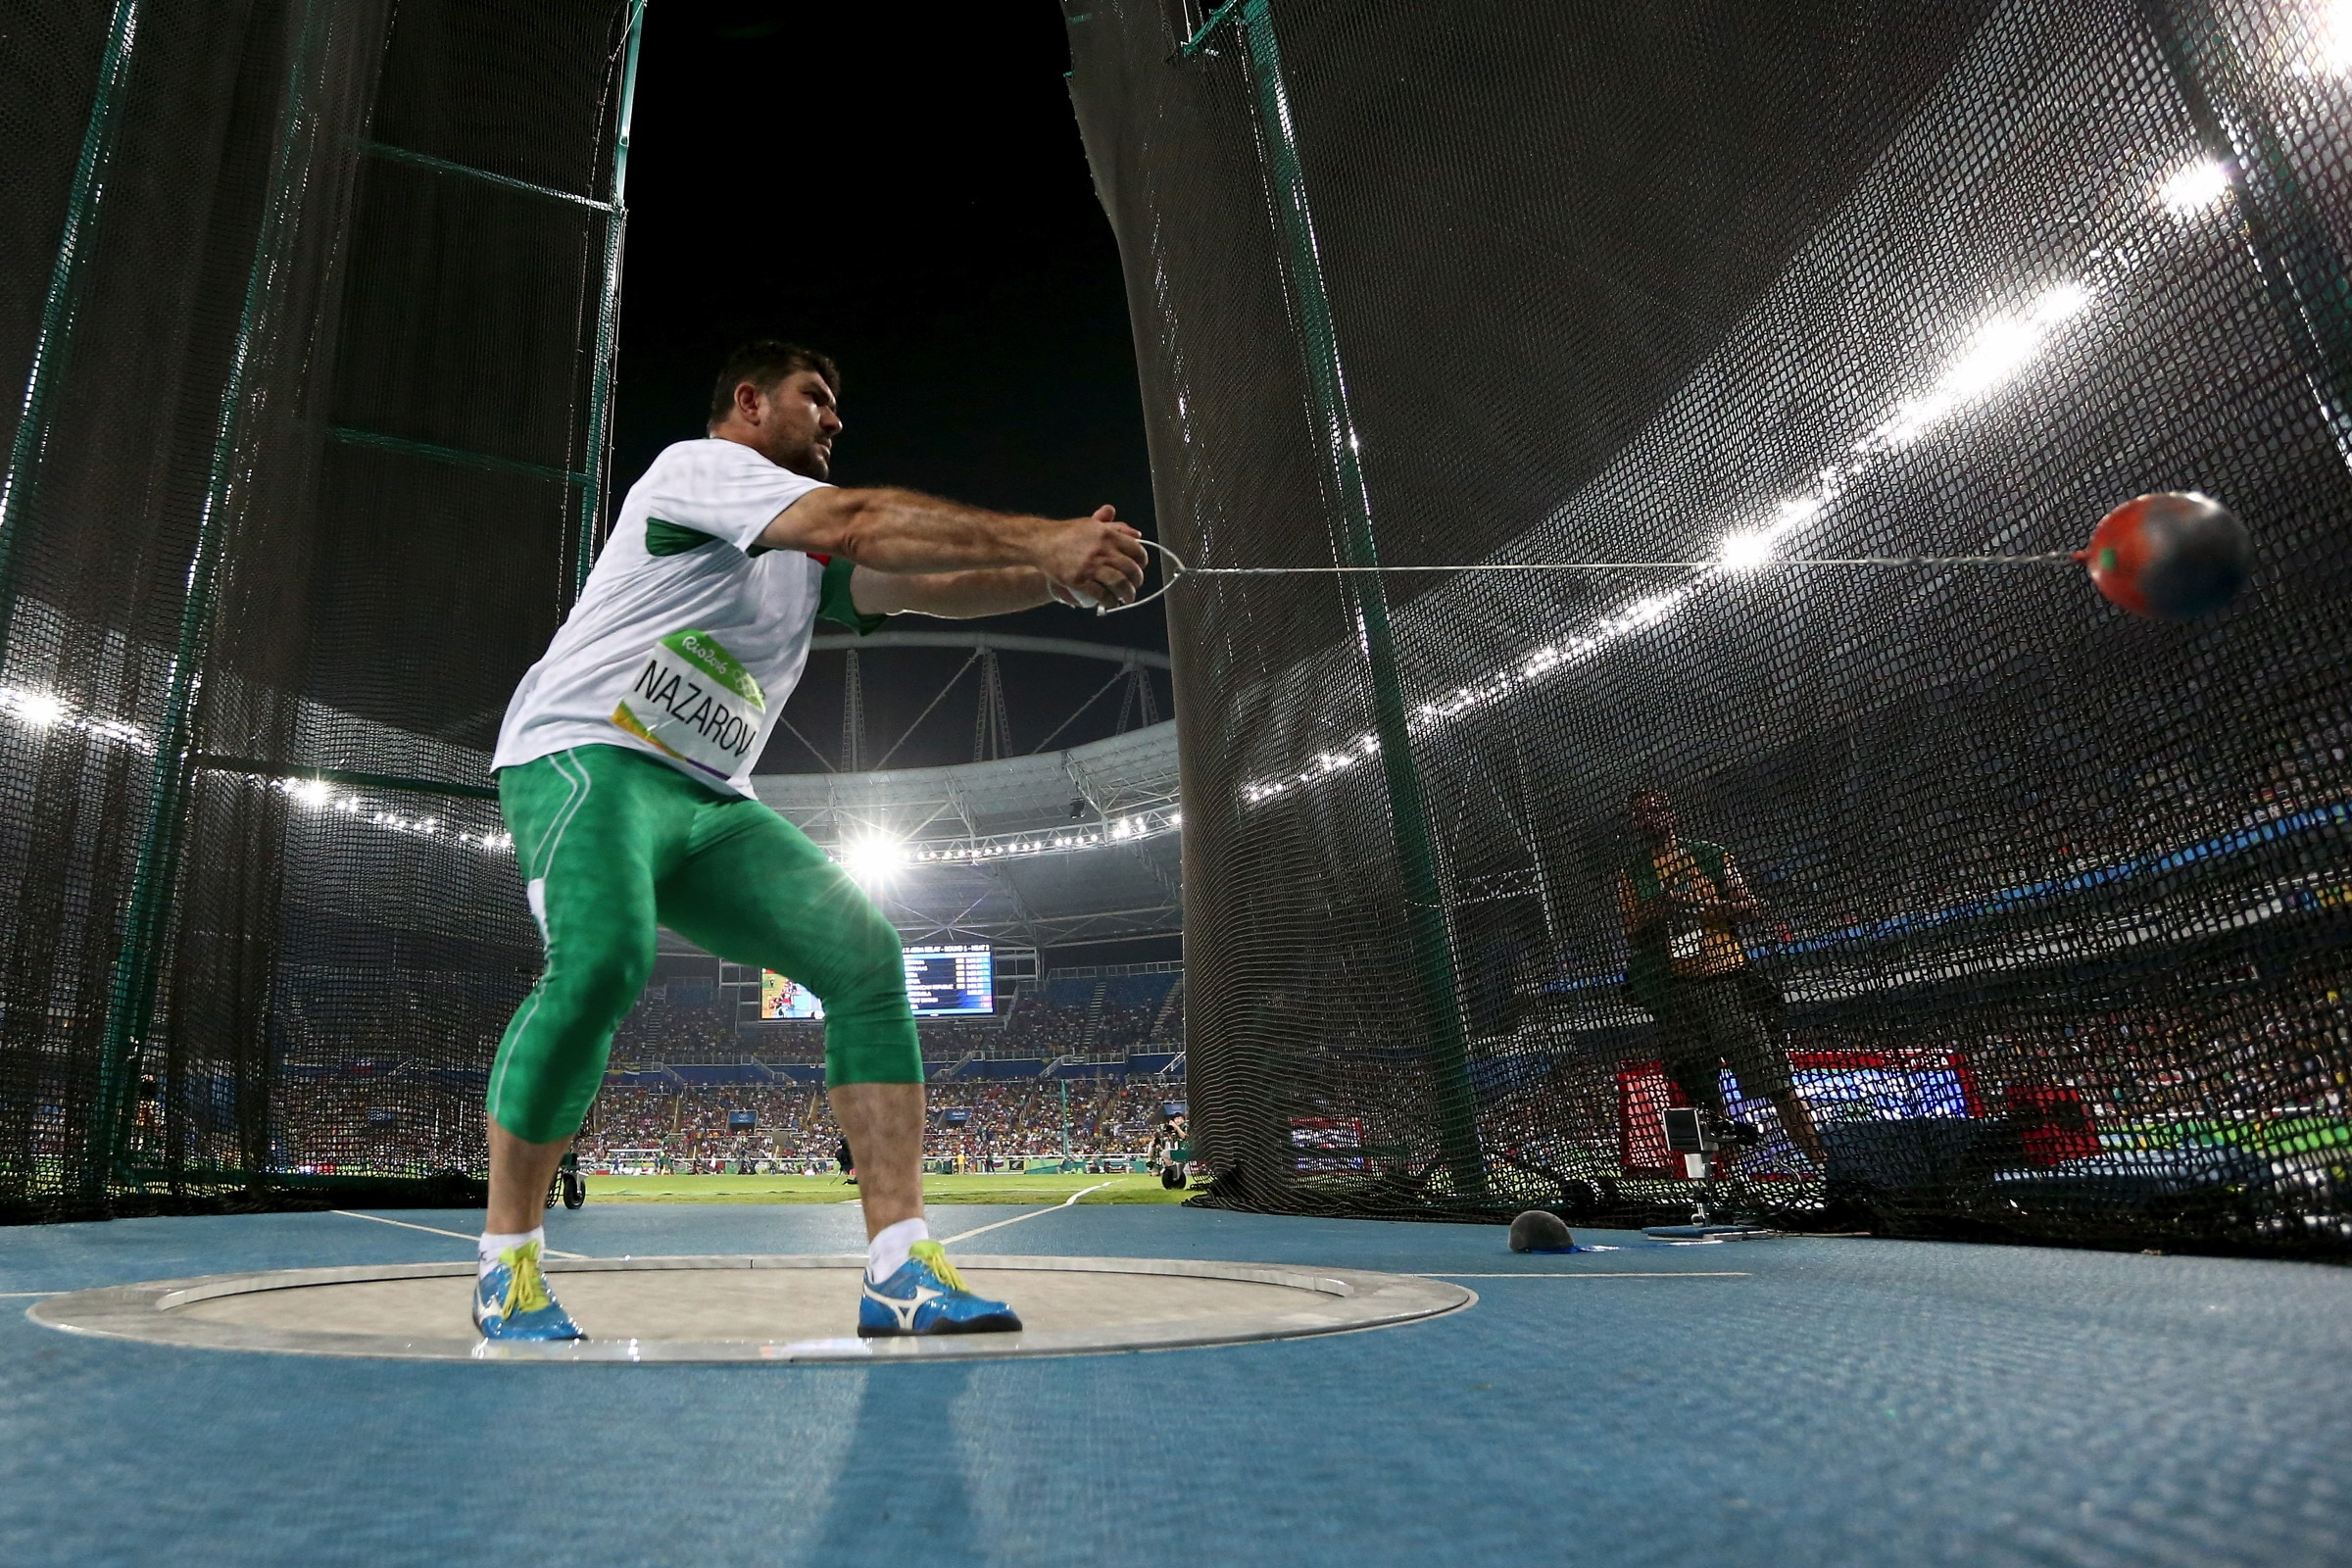 Athletics - Hammer Throw Men